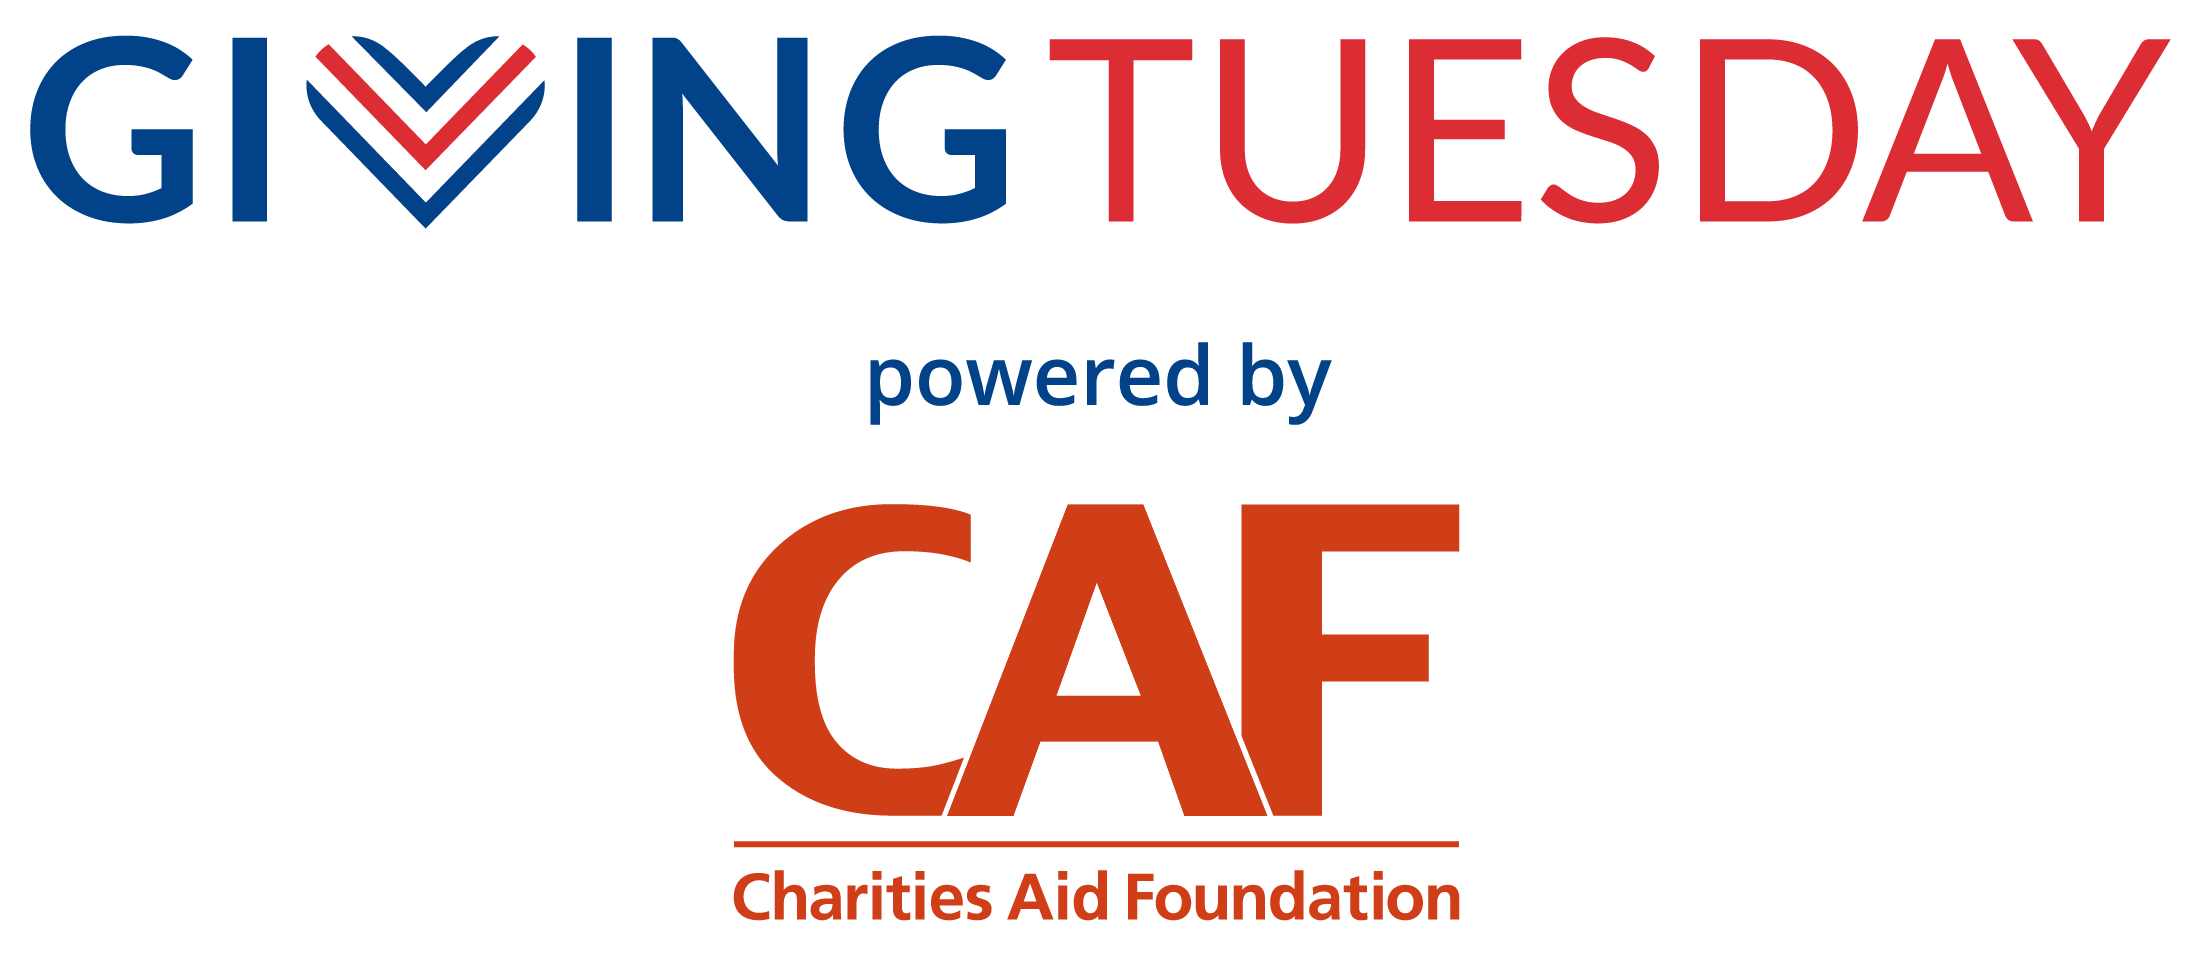 Giving Tuesday logo powered by CAF OPTION 1